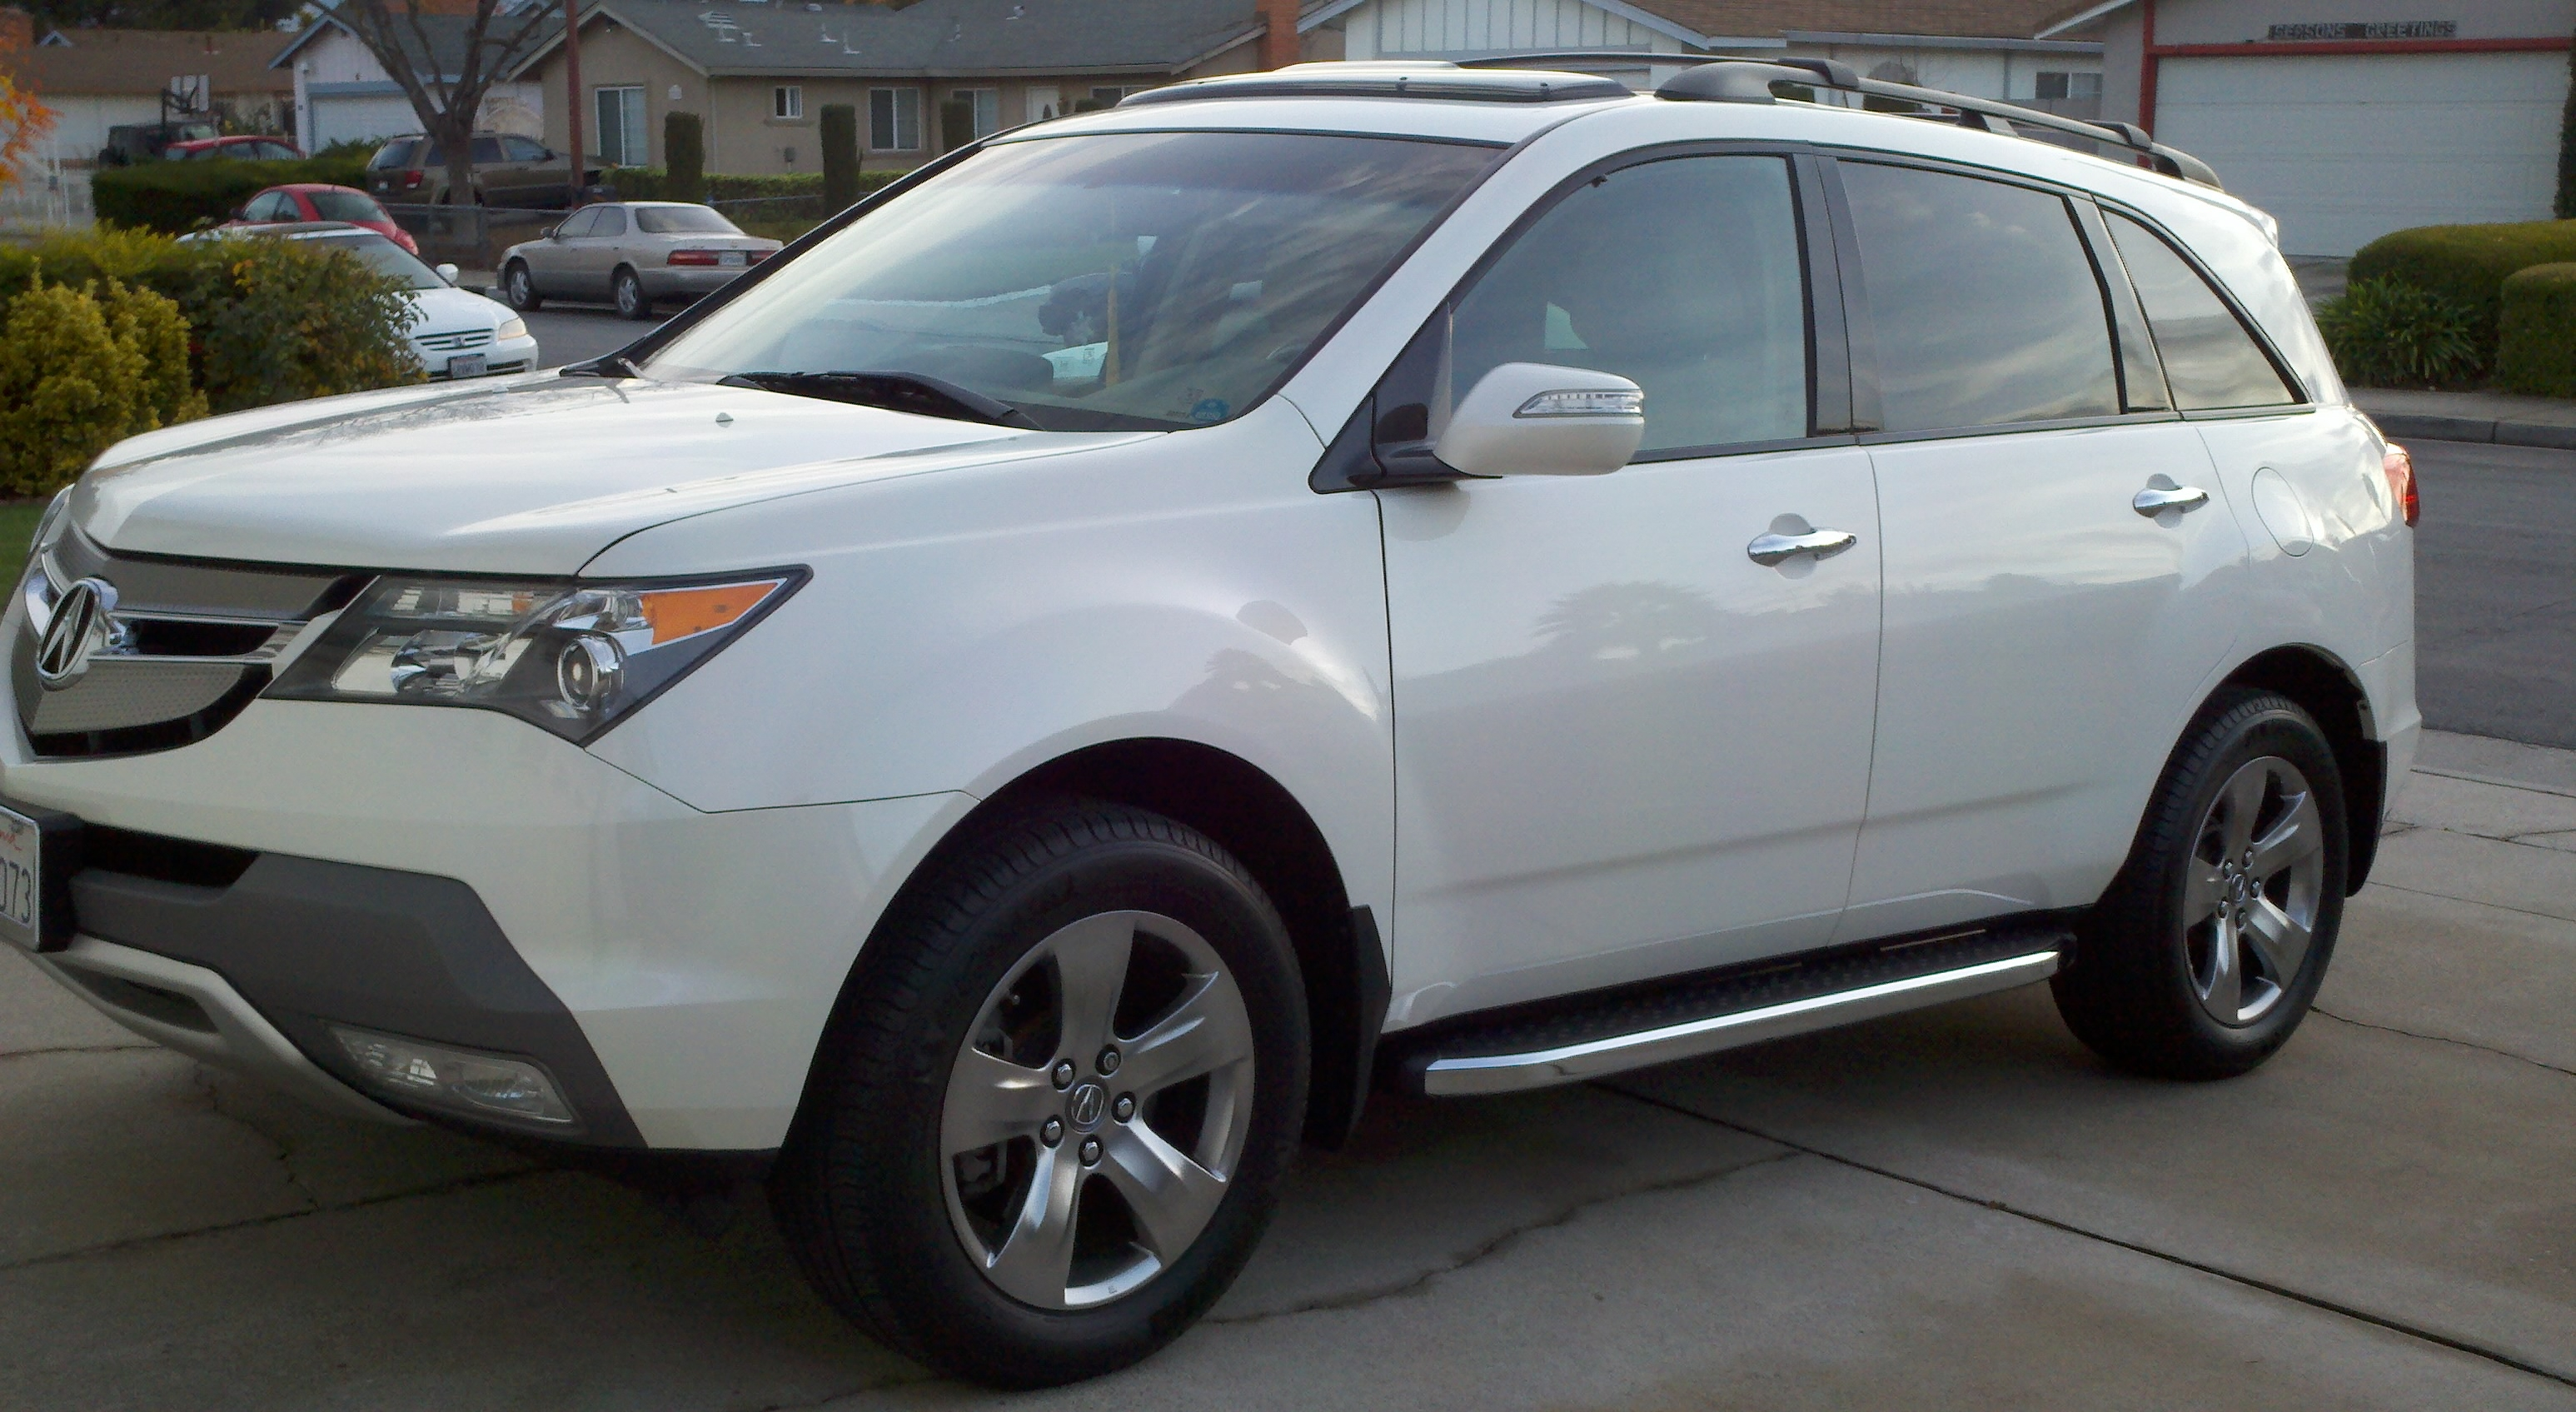 2010 advance running boards on 2009 page 2 acura mdx forum